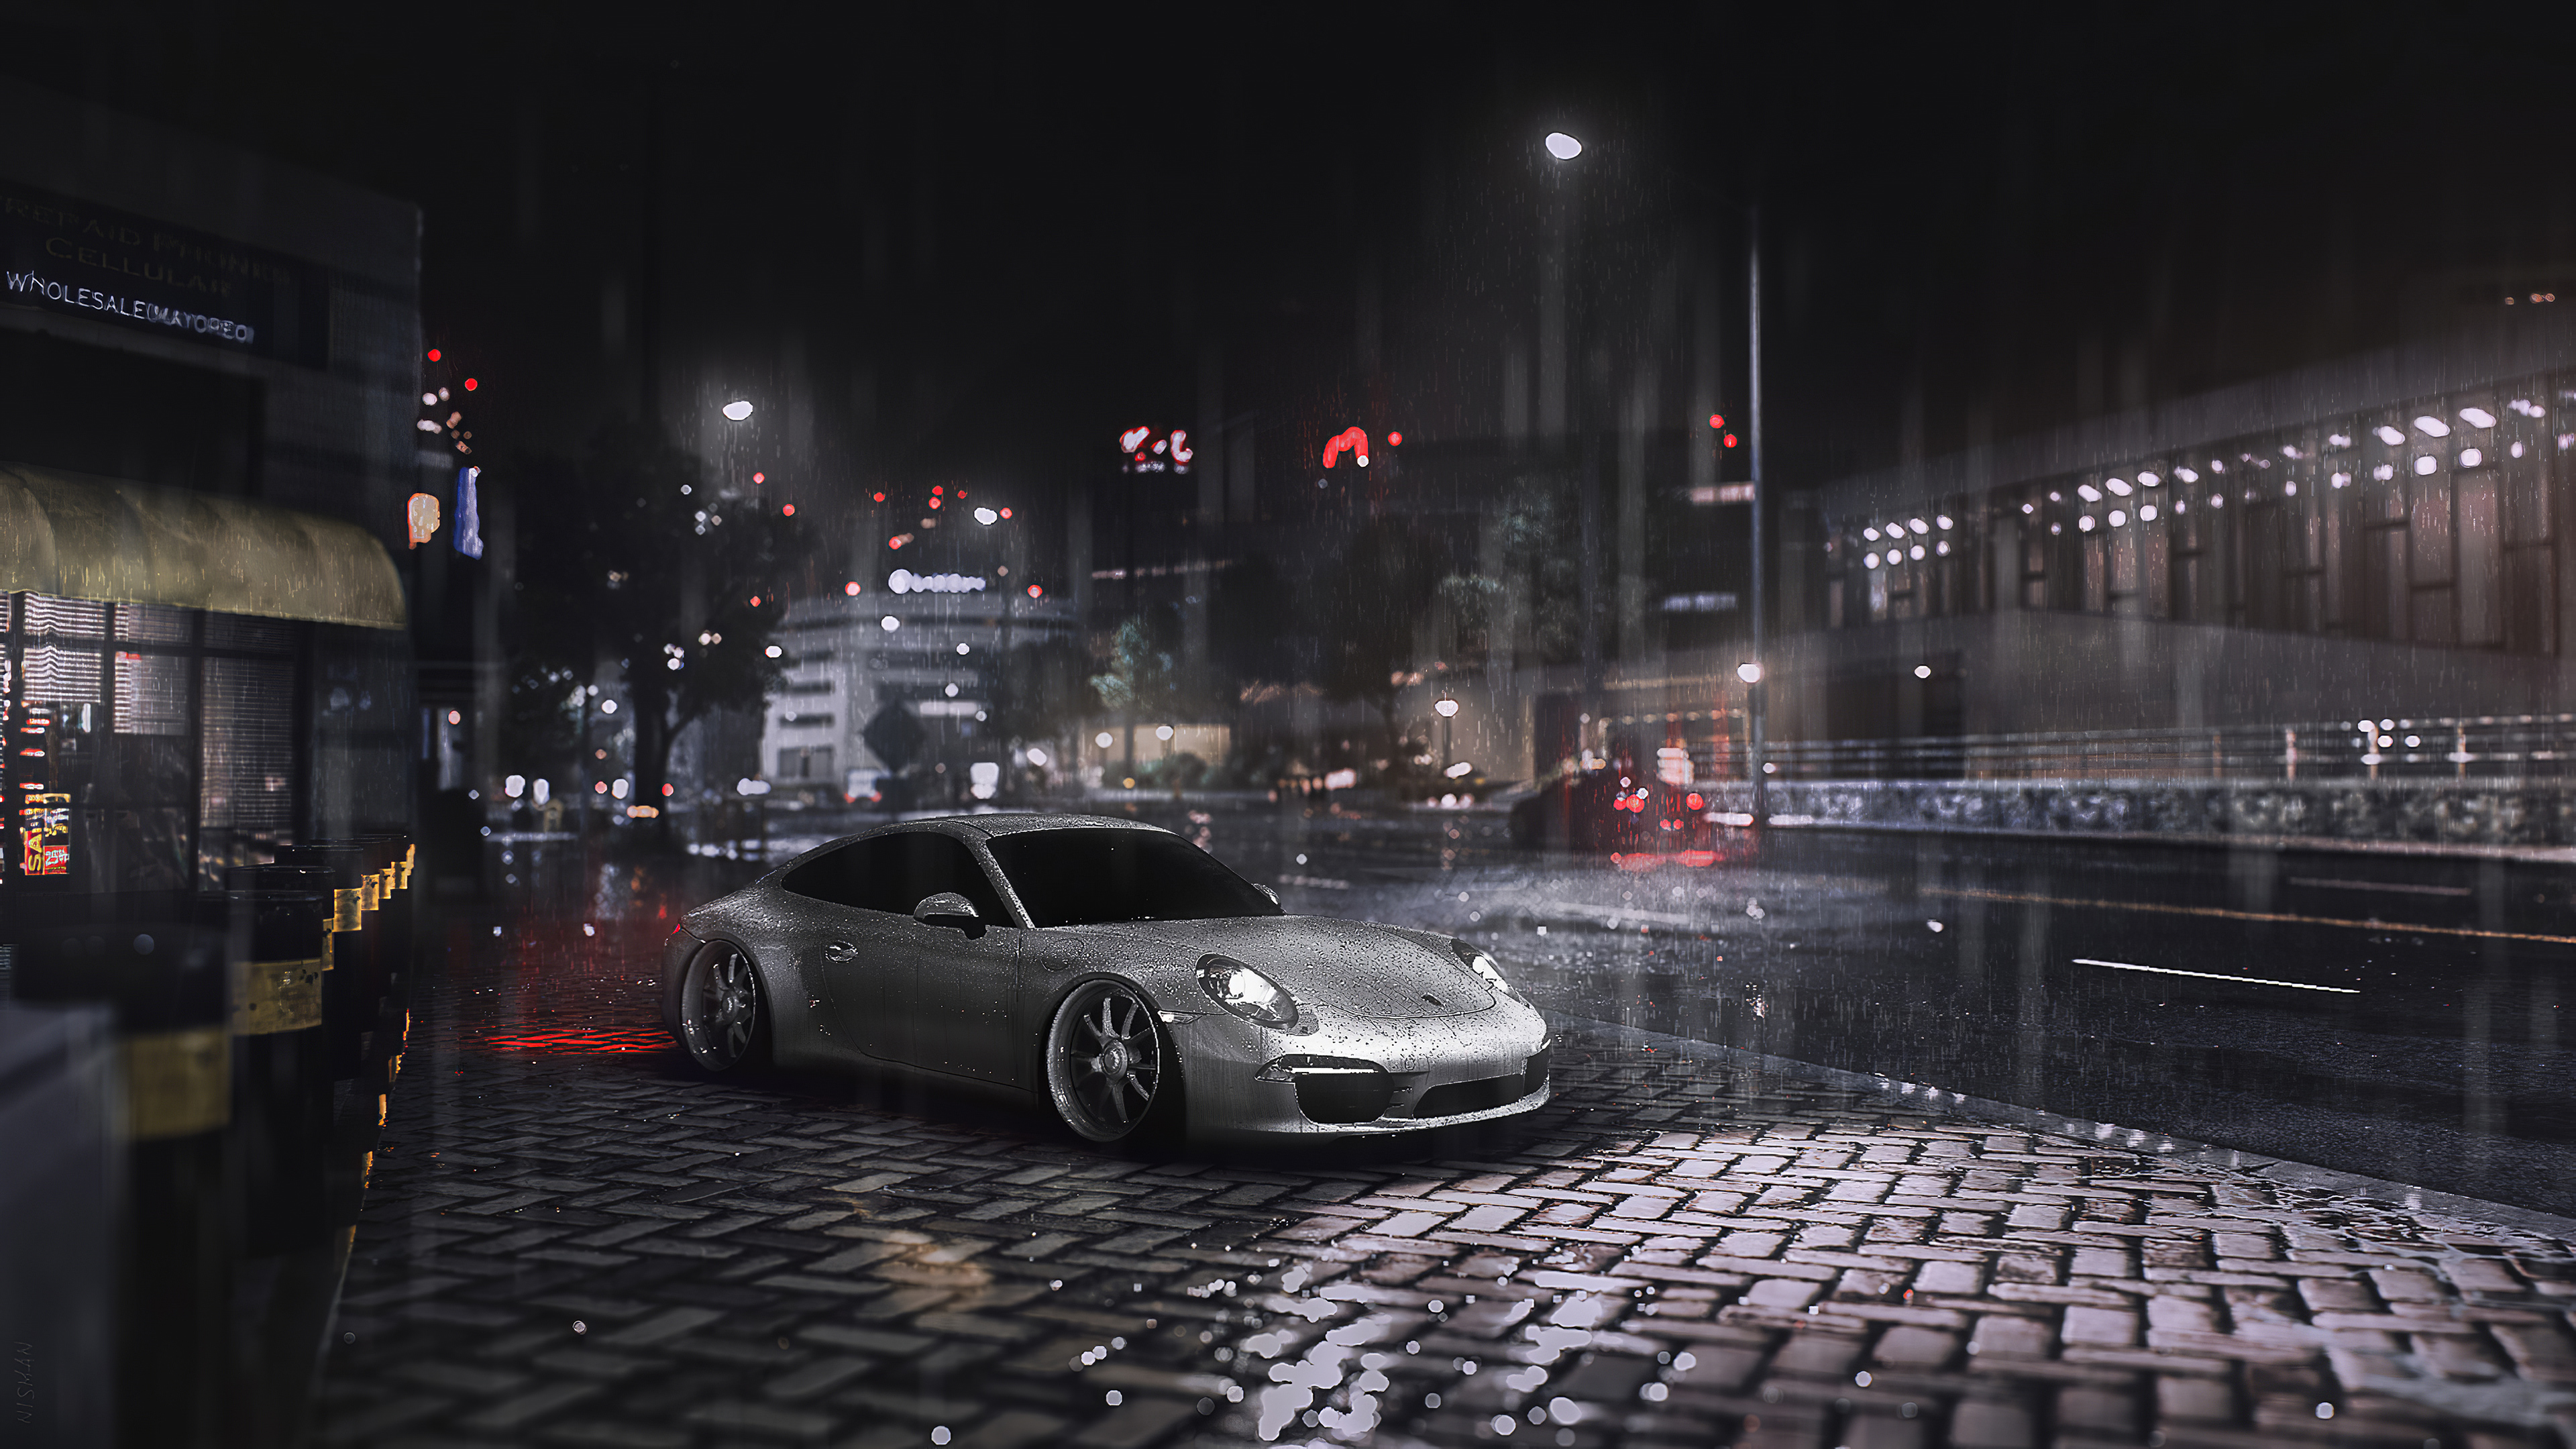 need for speed porsche white candy 1572370672 - Need For Speed Porsche White Candy - porsche wallpapers, need for speed wallpapers, hd-wallpapers, cars wallpapers, artstation wallpapers, 4k-wallpapers